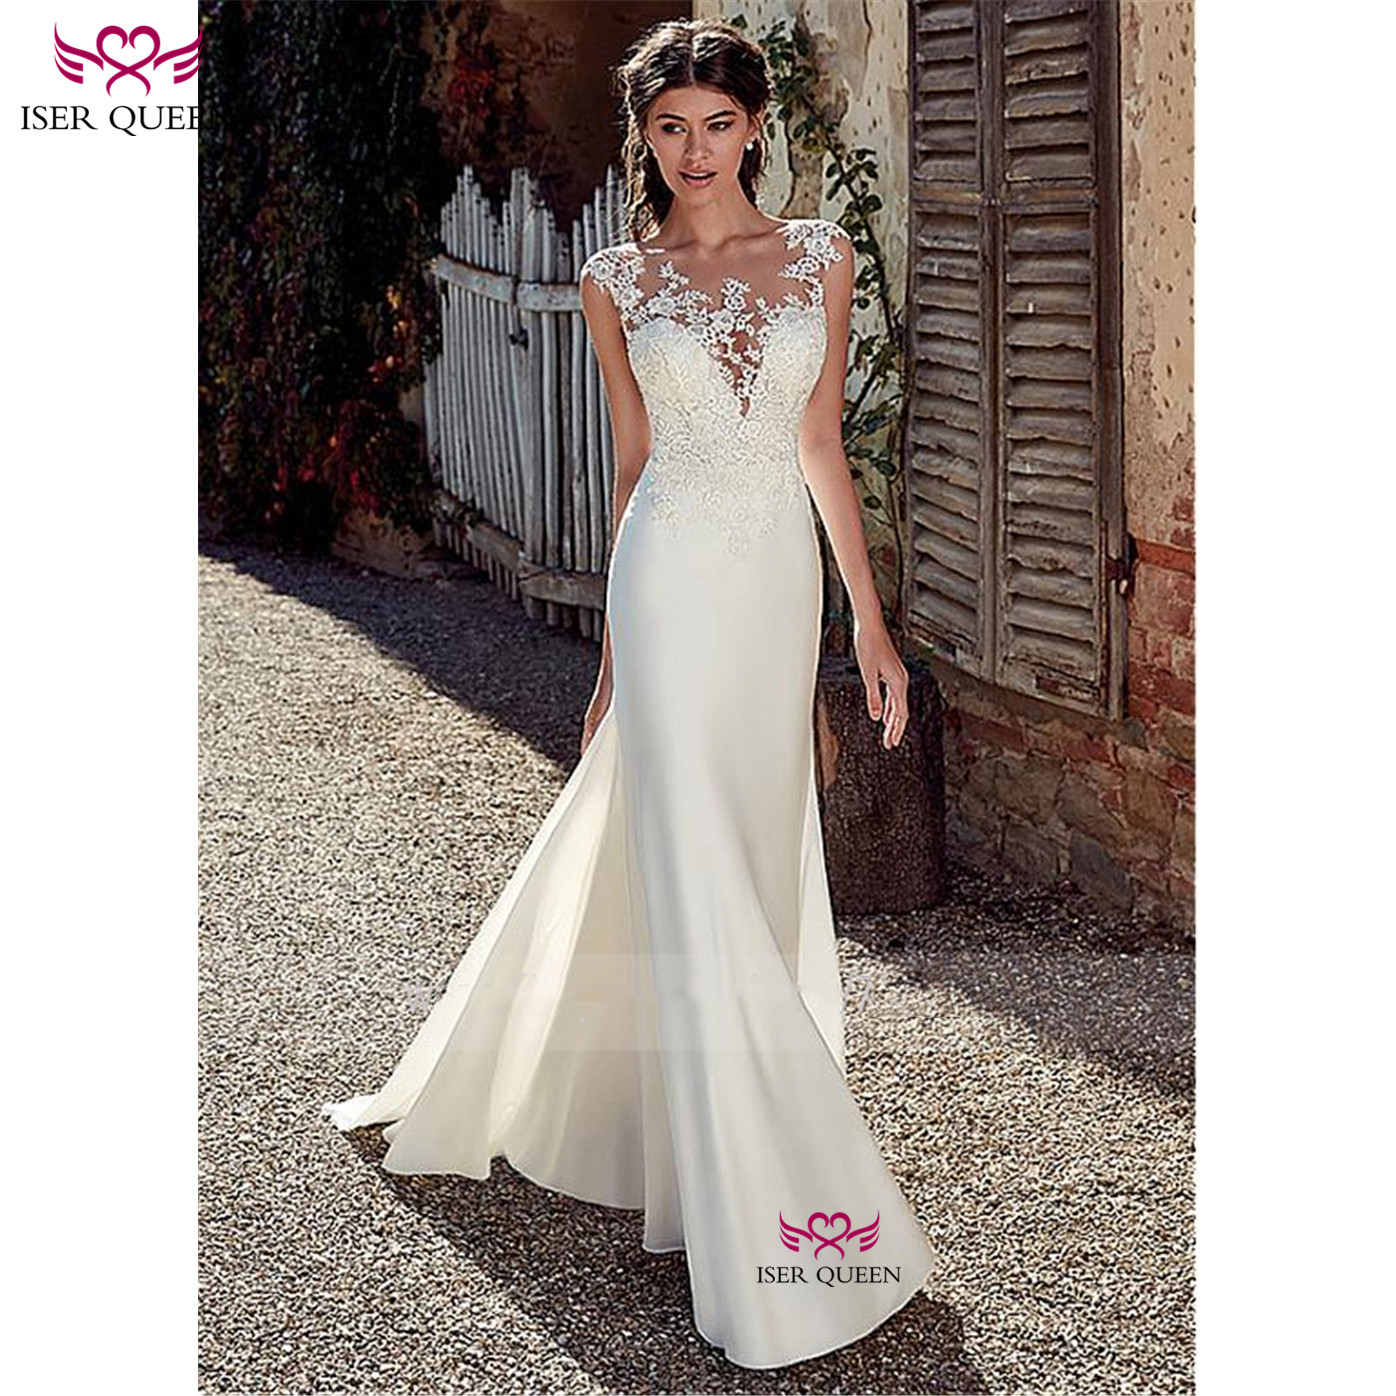 New Europe Style Chiffon Mermaid Wedding Dress Embroidery Deep V-neckline Vestido De Noiva Ivory Bride Dress W0517